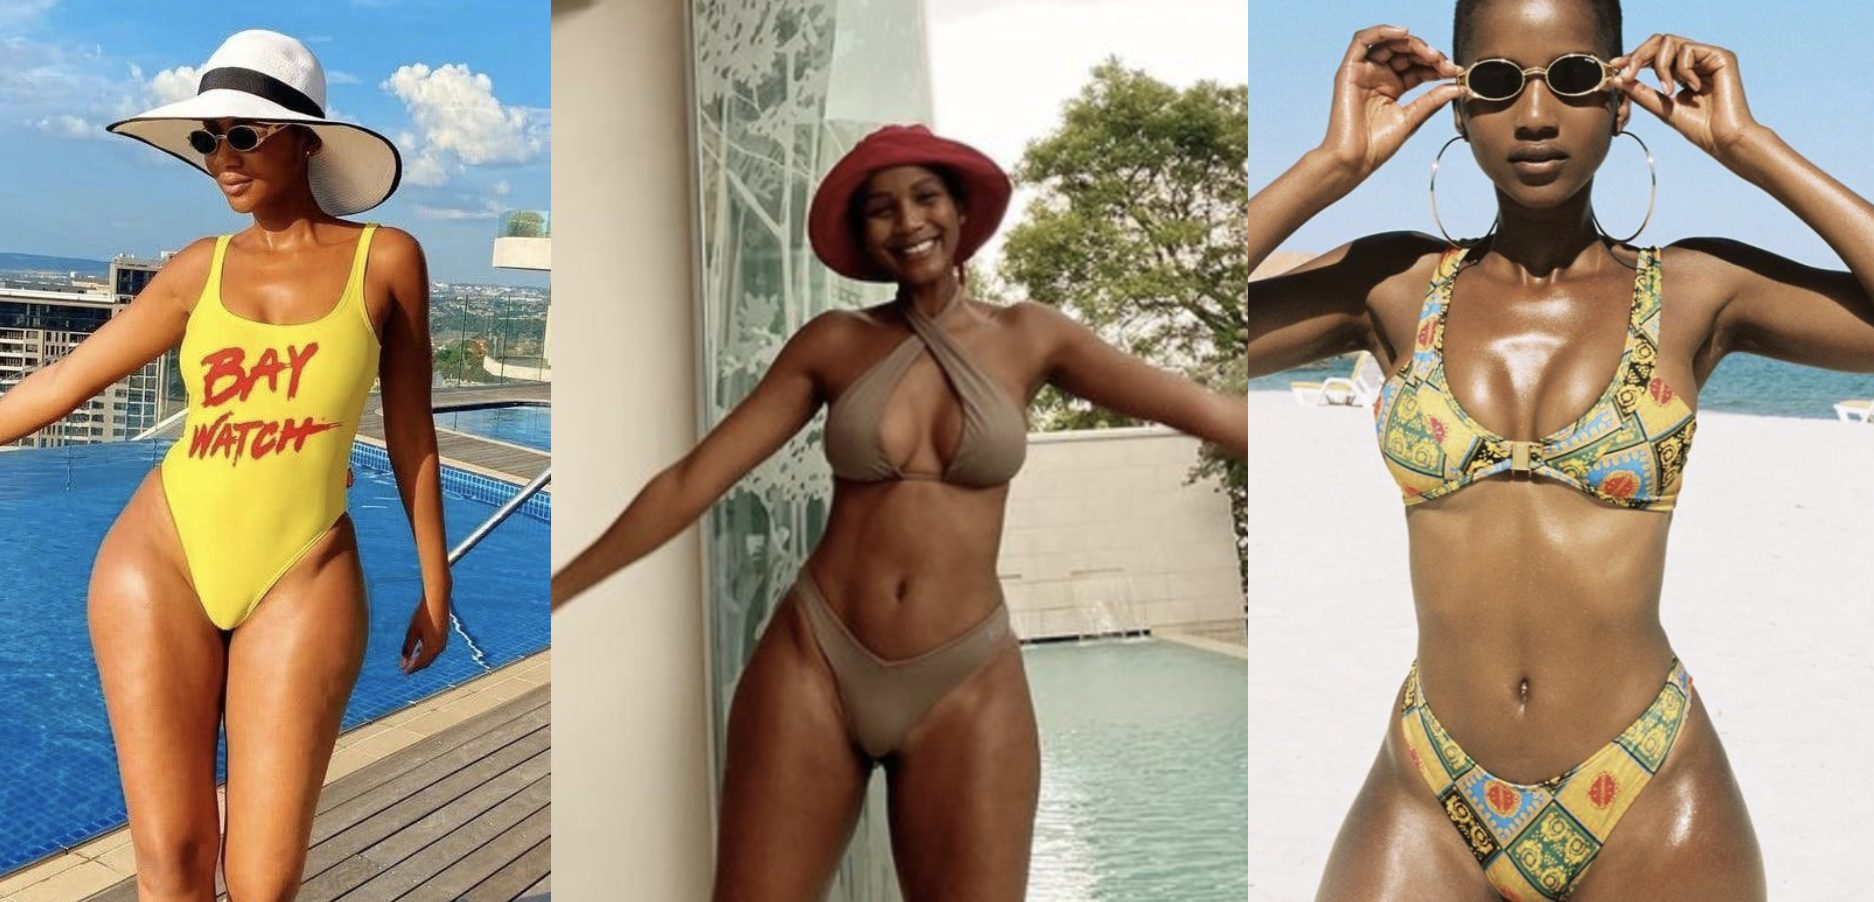 Miss SA harassed on social media over posting bikini pictures